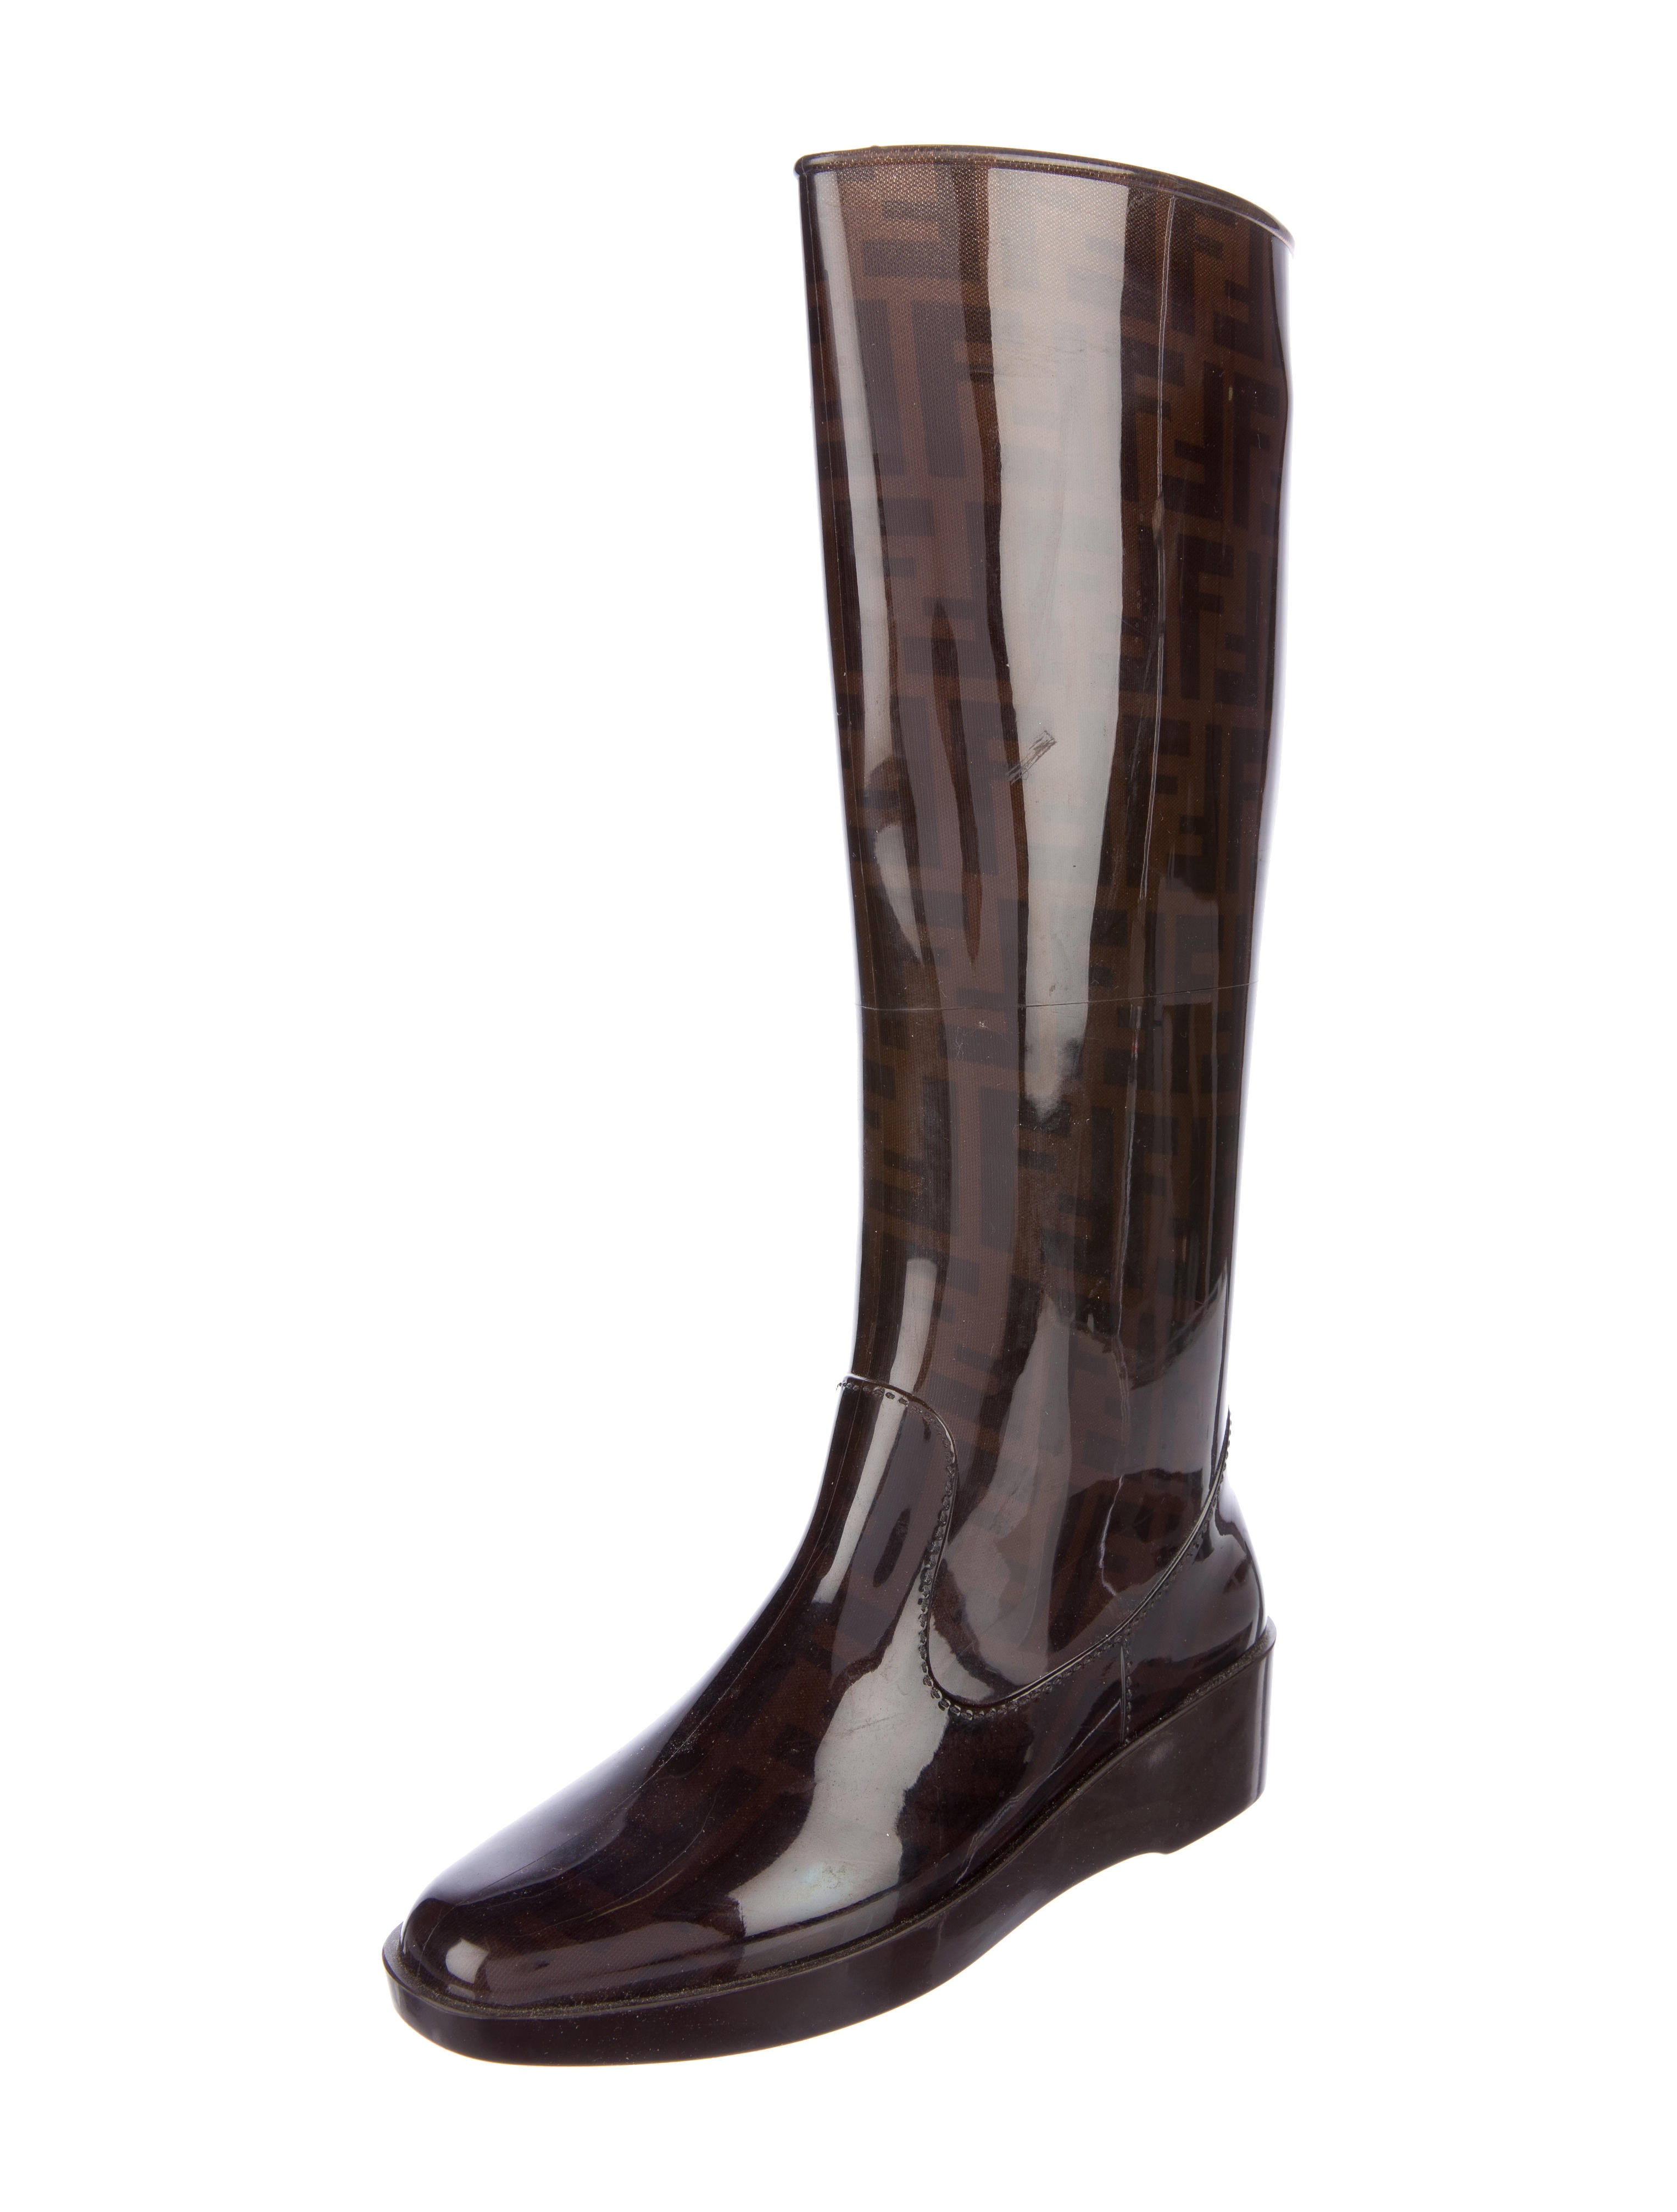 Amazing Hunter White Knee-High Rain Boots - Shoes - WH820728 | The RealReal